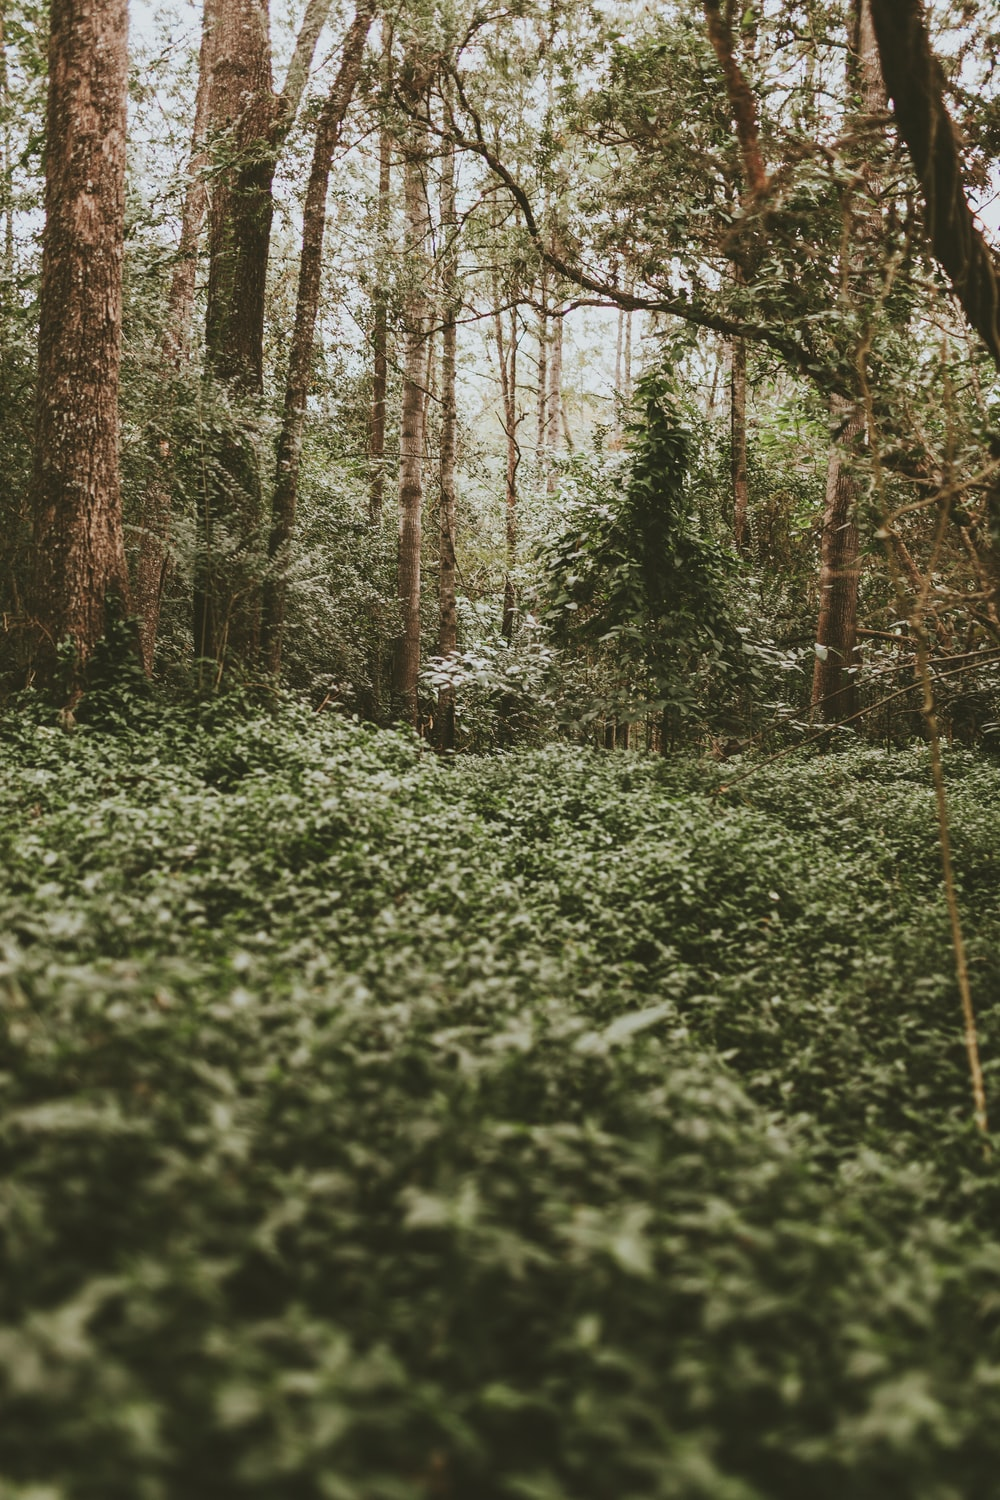 green plants under trees in the forest